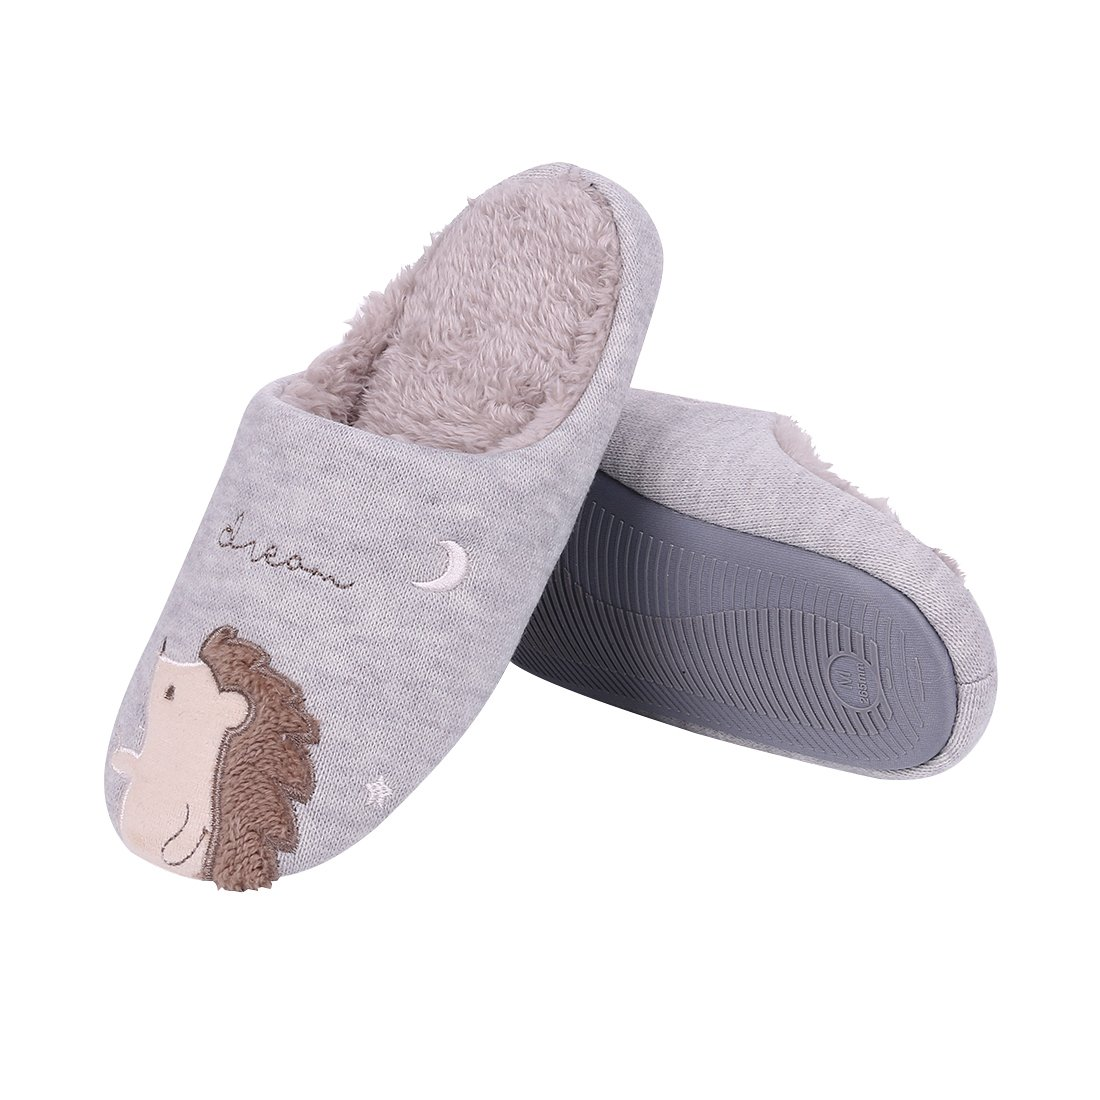 Cute Animal House Slippers Hedgehog Dog Family Indoor Slippers Waterproof Sole Fuzzy Bedroom Slippers for Kids 16G-M by Shevalues (Image #2)